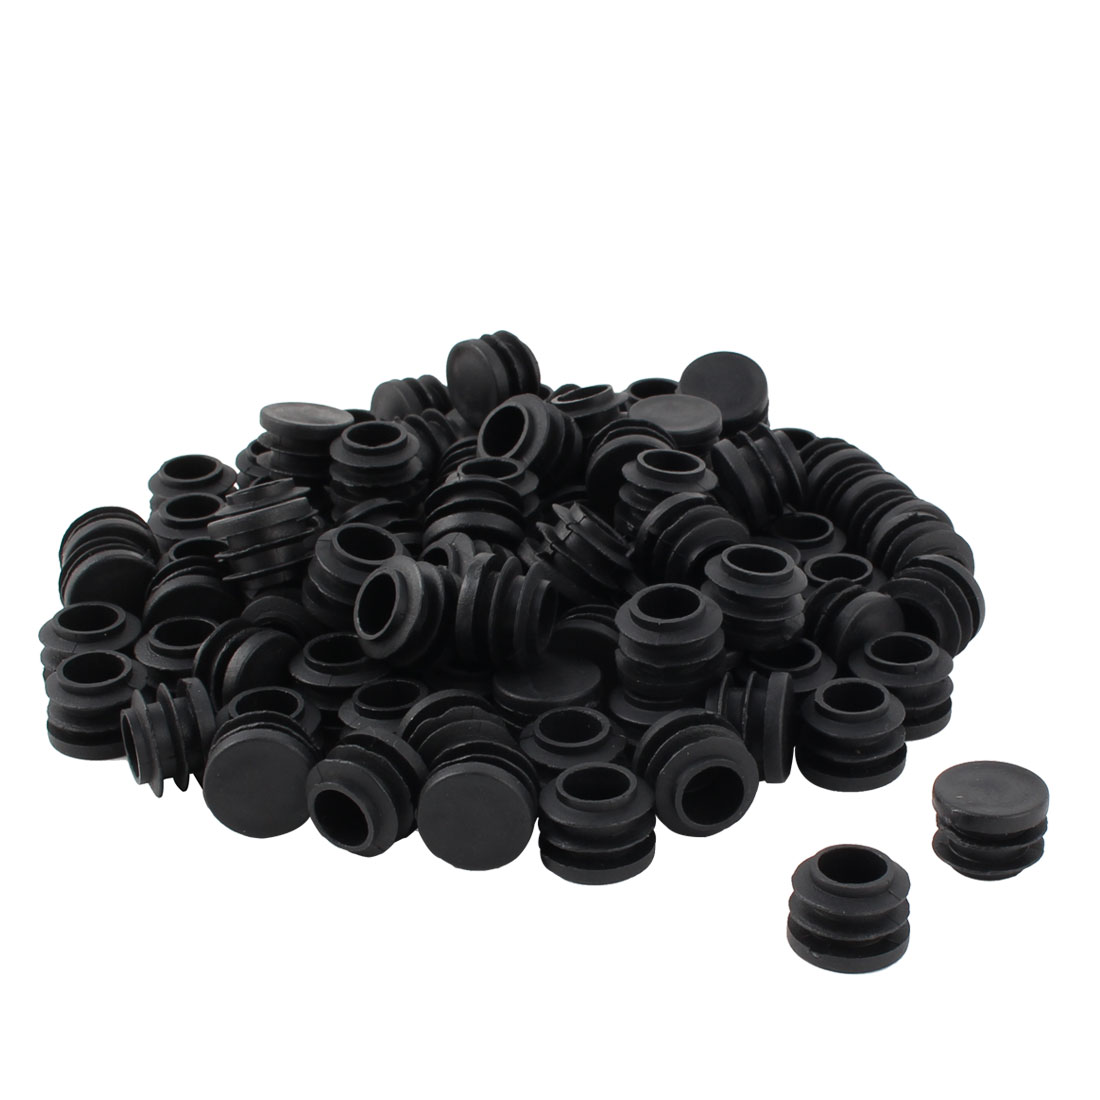 Furniture Table Chair Plastic Round Tube Pipe Insert Cap Cover Protector Black 19mm Dia 100pcs